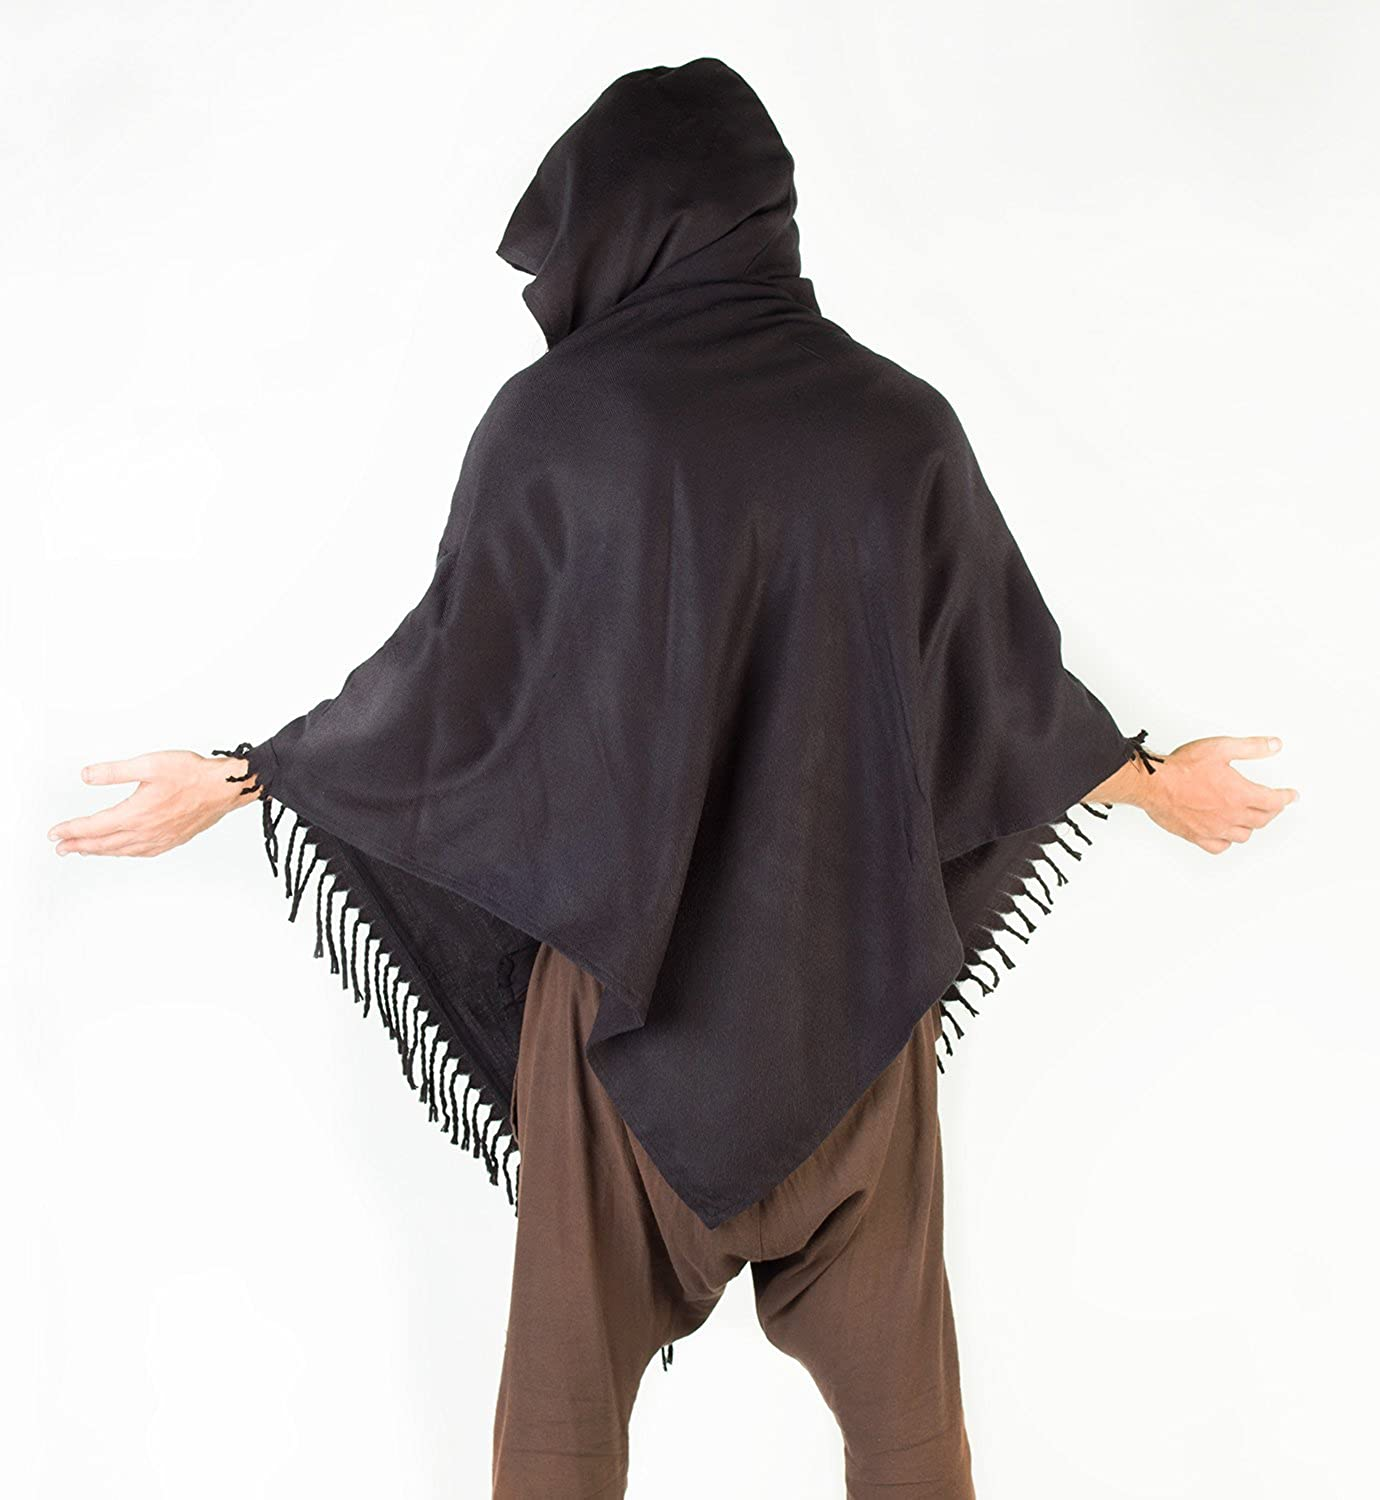 AJJAYA Mens Poncho Simply Black Handmade Cashmere Wool with Large Hood and Pockets Jungle Primitive Gypsy Festival Mexican Tribal Embroidered Celtic Earthy Winter Tibetan Wild /…